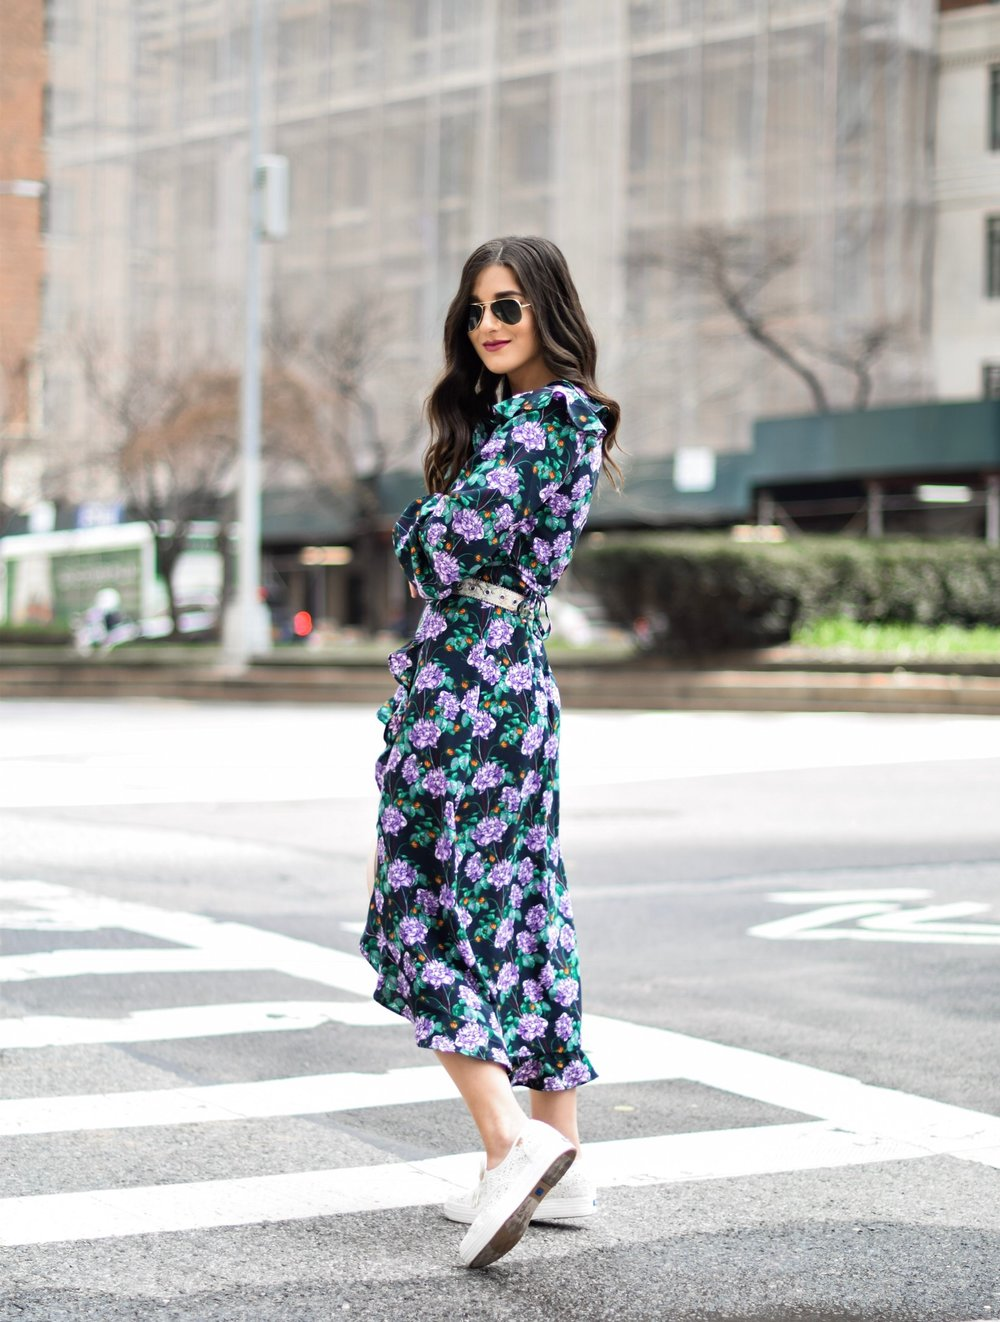 Embroidered Crochet Keds Floral Maxi Dress Zappos Esther Santer Fashion Blog NYC Street Style Blogger Outfit OOTD Trendy Shoes Collab  Lace White Embroidered Sneakers RayBan Sunglasses Aviators Maxi Dress Girly Feminine Sporty Vibes Look Summer Inspo.jpg